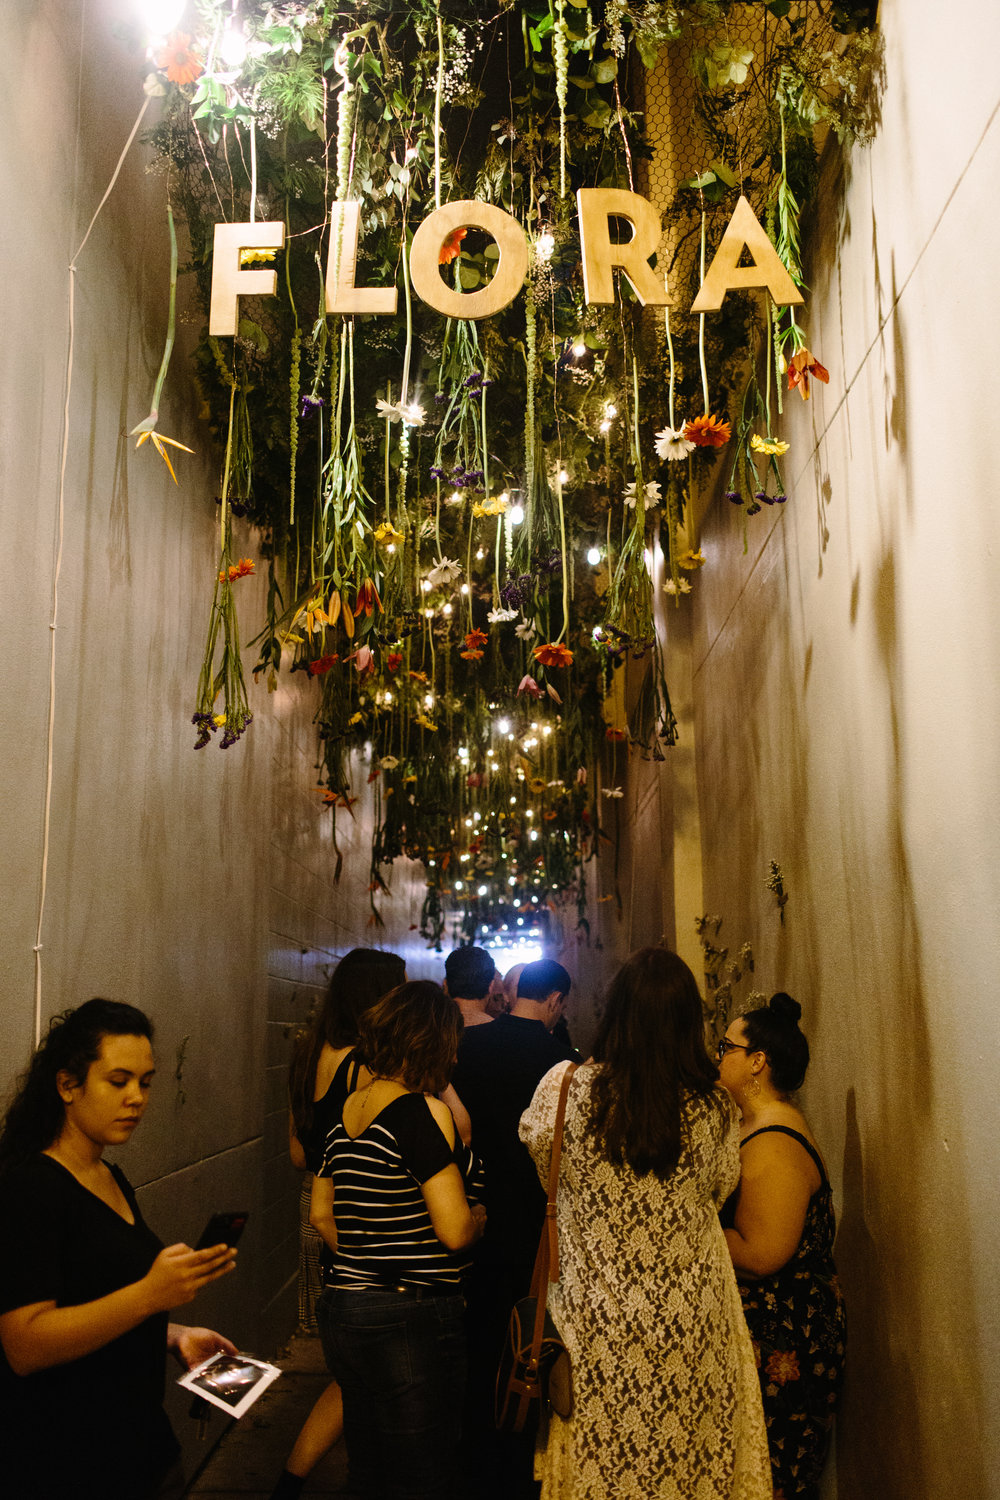 Hundreds of real flowers bring this alleyway to life as part of the Flora installation by Andre Bohrer. (photo : Jesse Walsh)